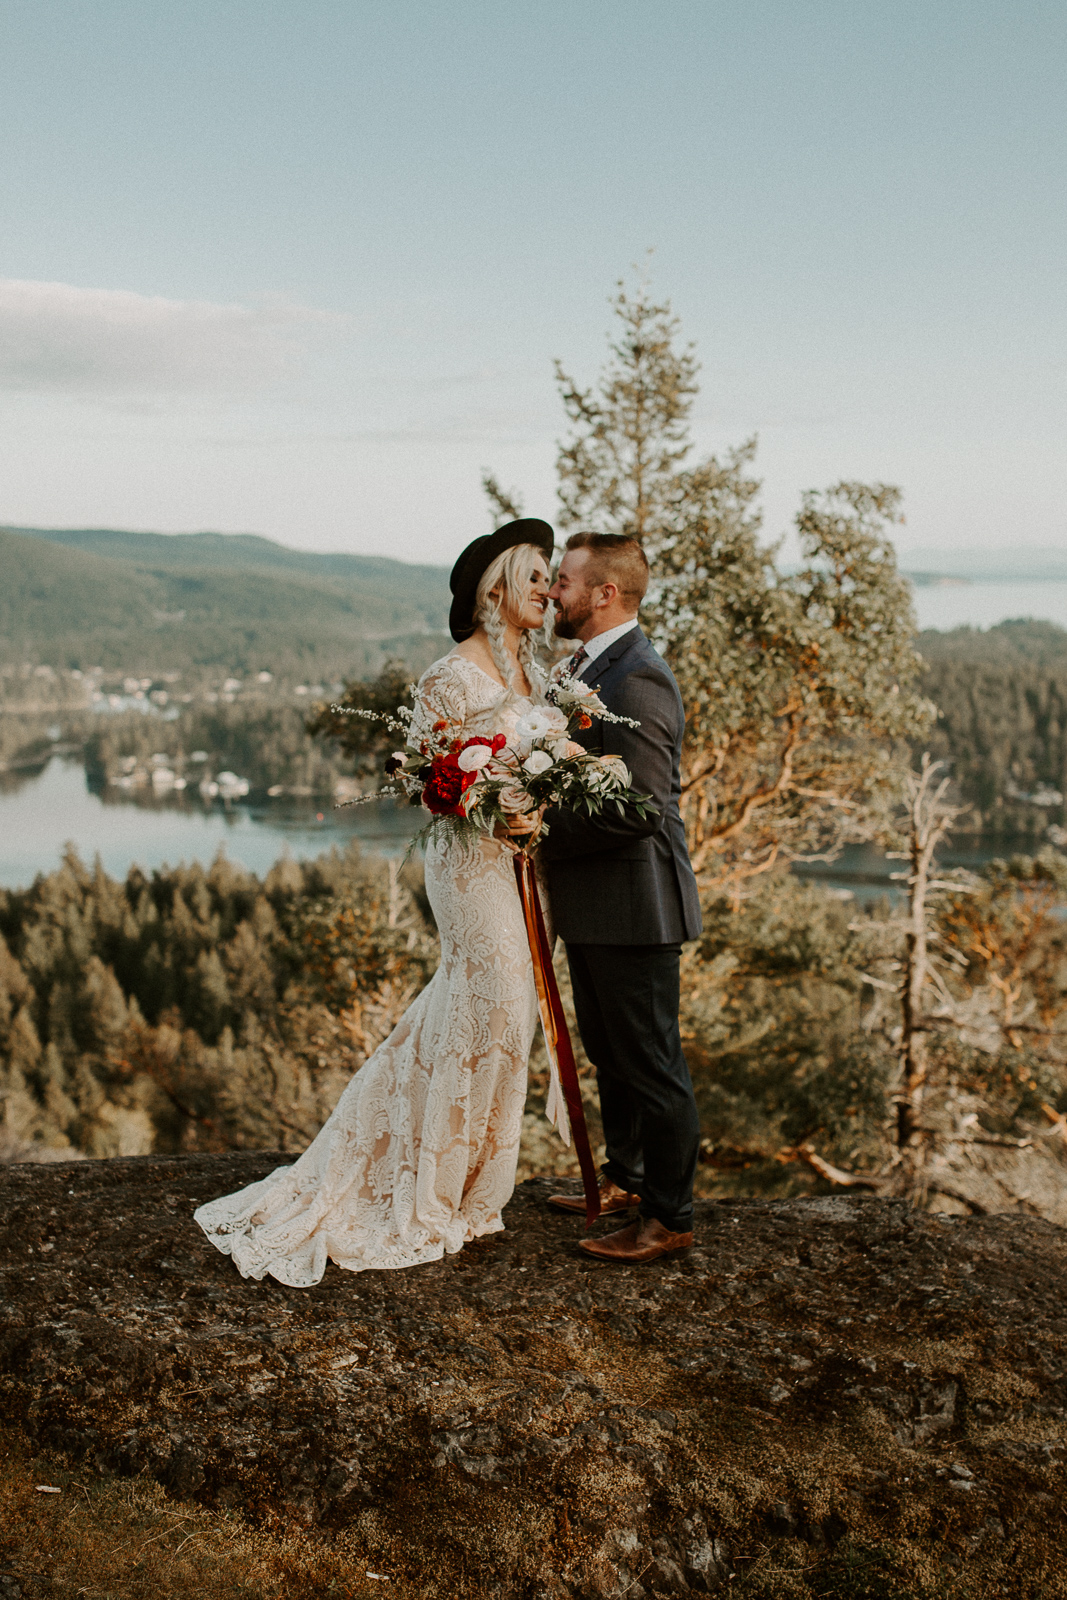 Luke Lambertson Photo_BritishColumbia_Canada_AdventurousCouple_Elopement_IMG-7906.jpg